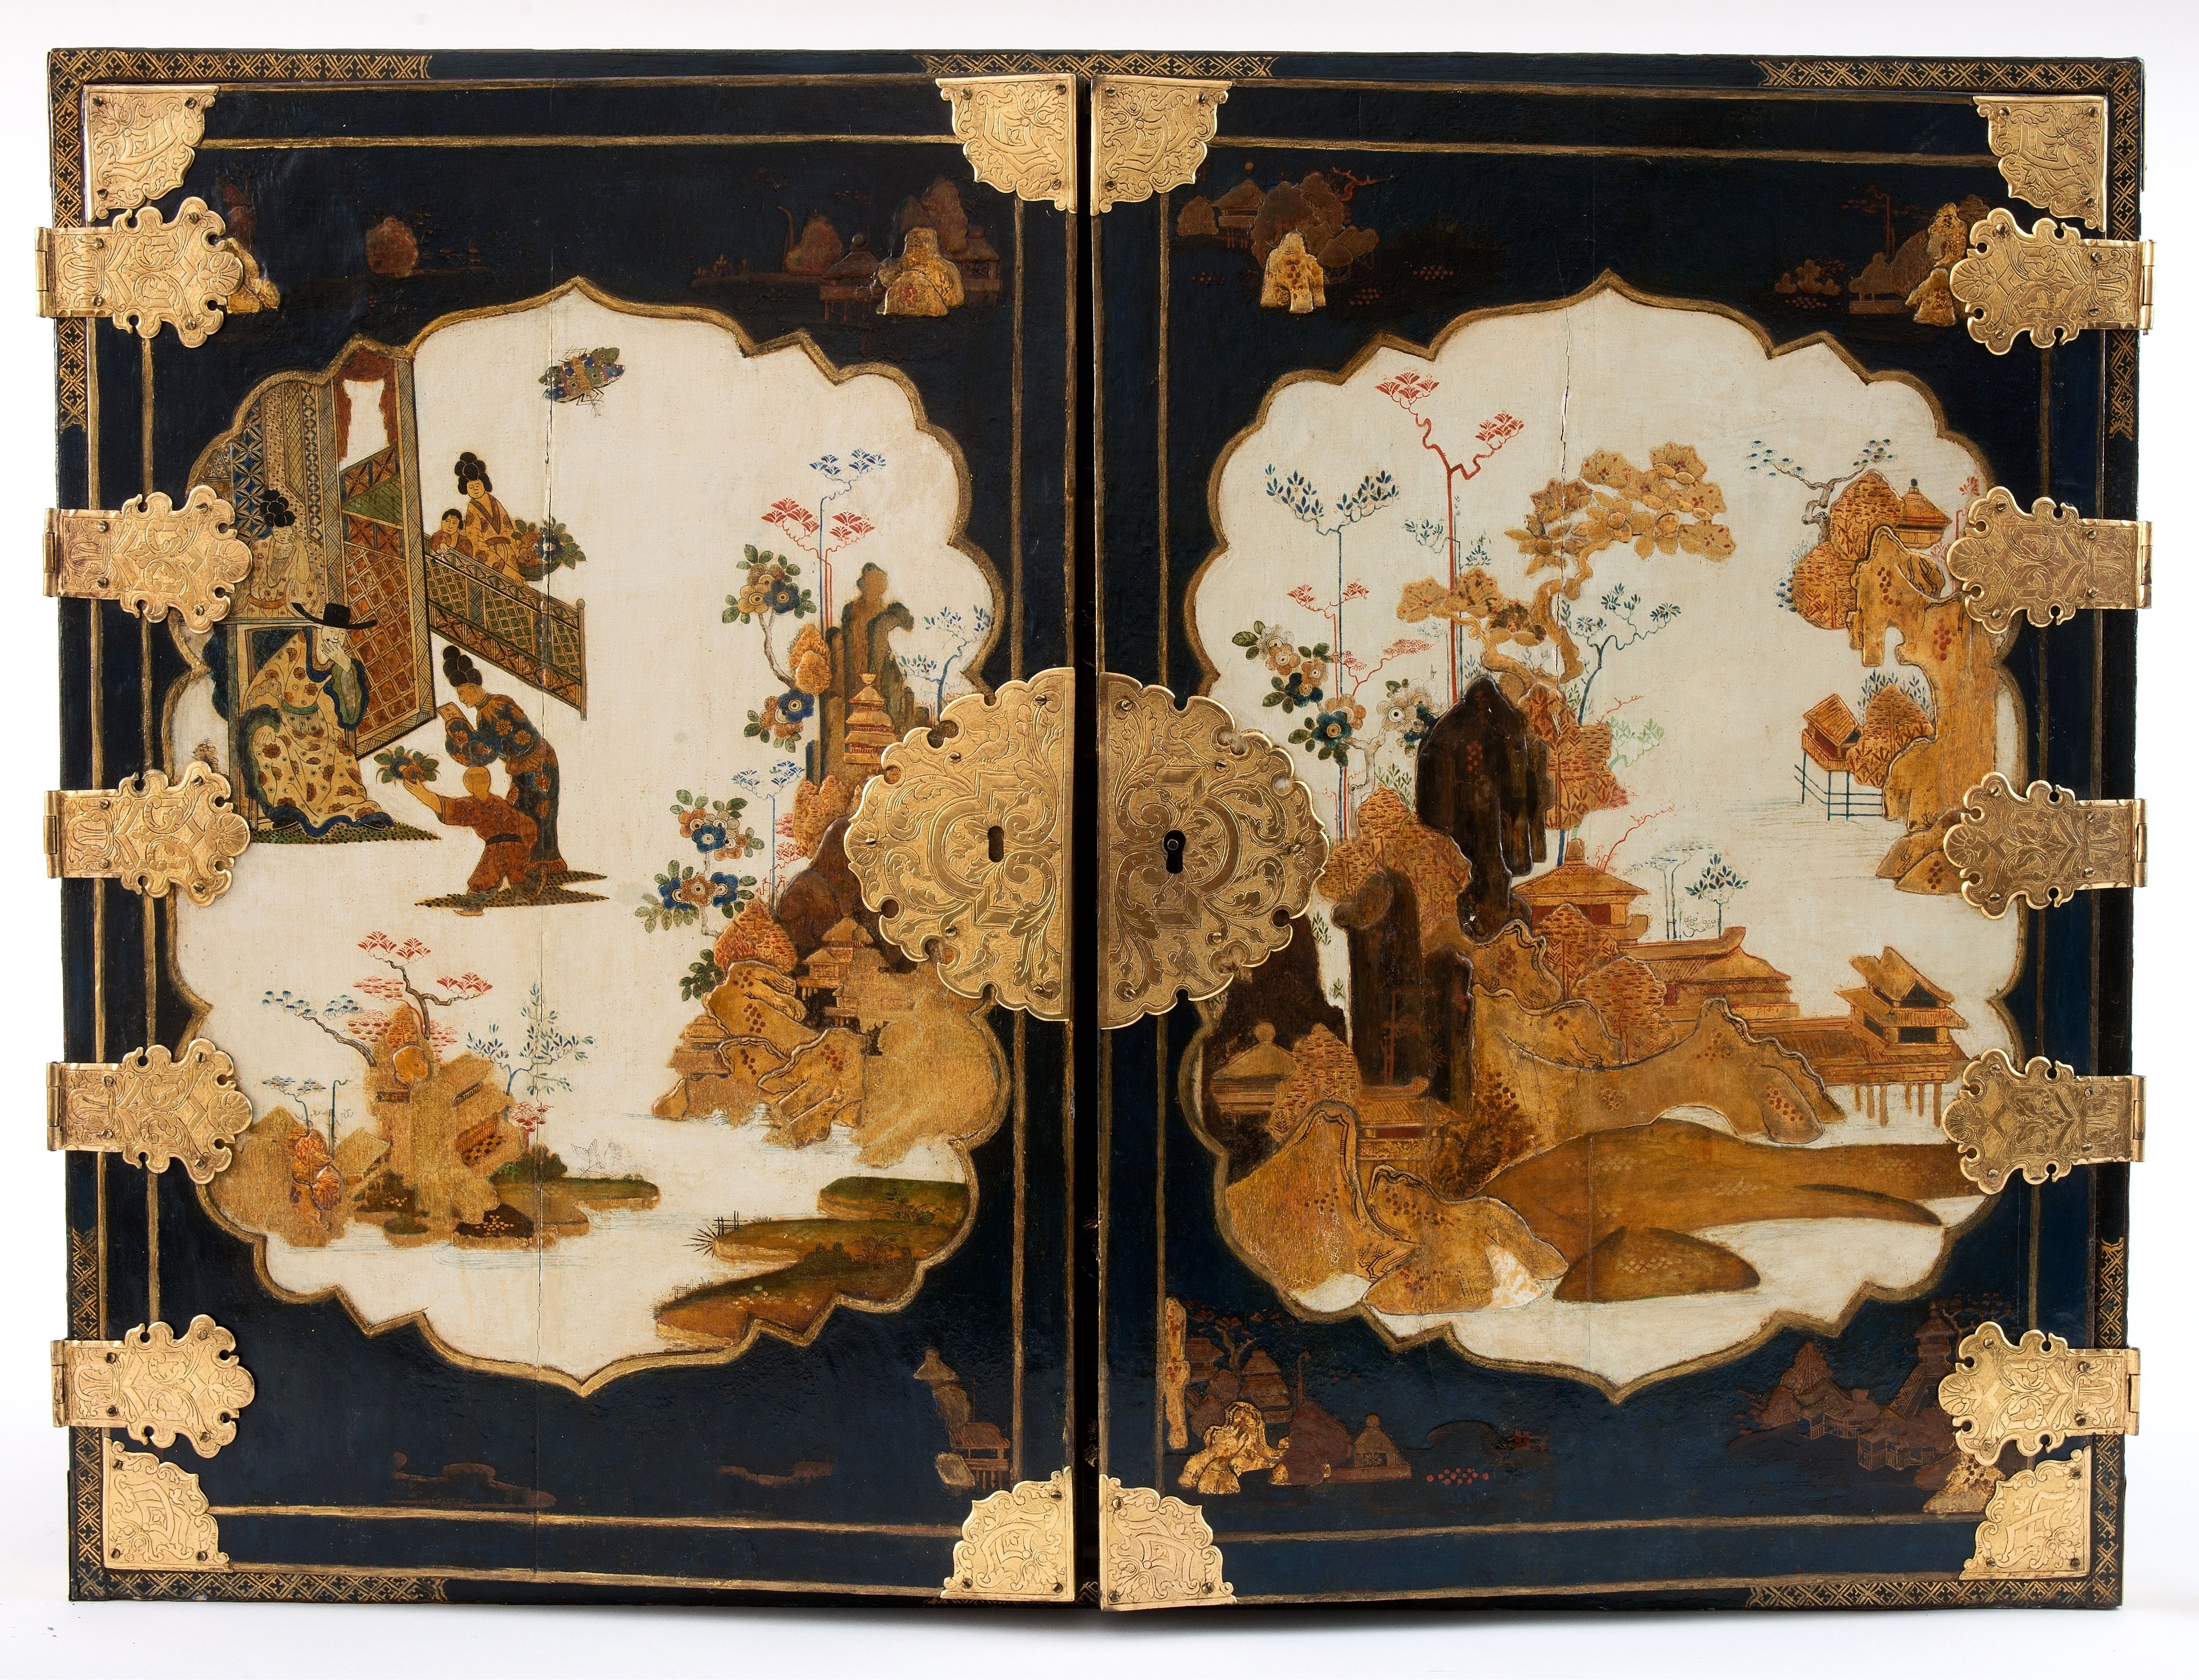 Chinosierie cabinet containing fifteen drawers by Martin Schnell, beginning of the 18th century, Muzeum Pałacu Króla Jana III w Wilanowie, lost during World War II and revindicated from Germany